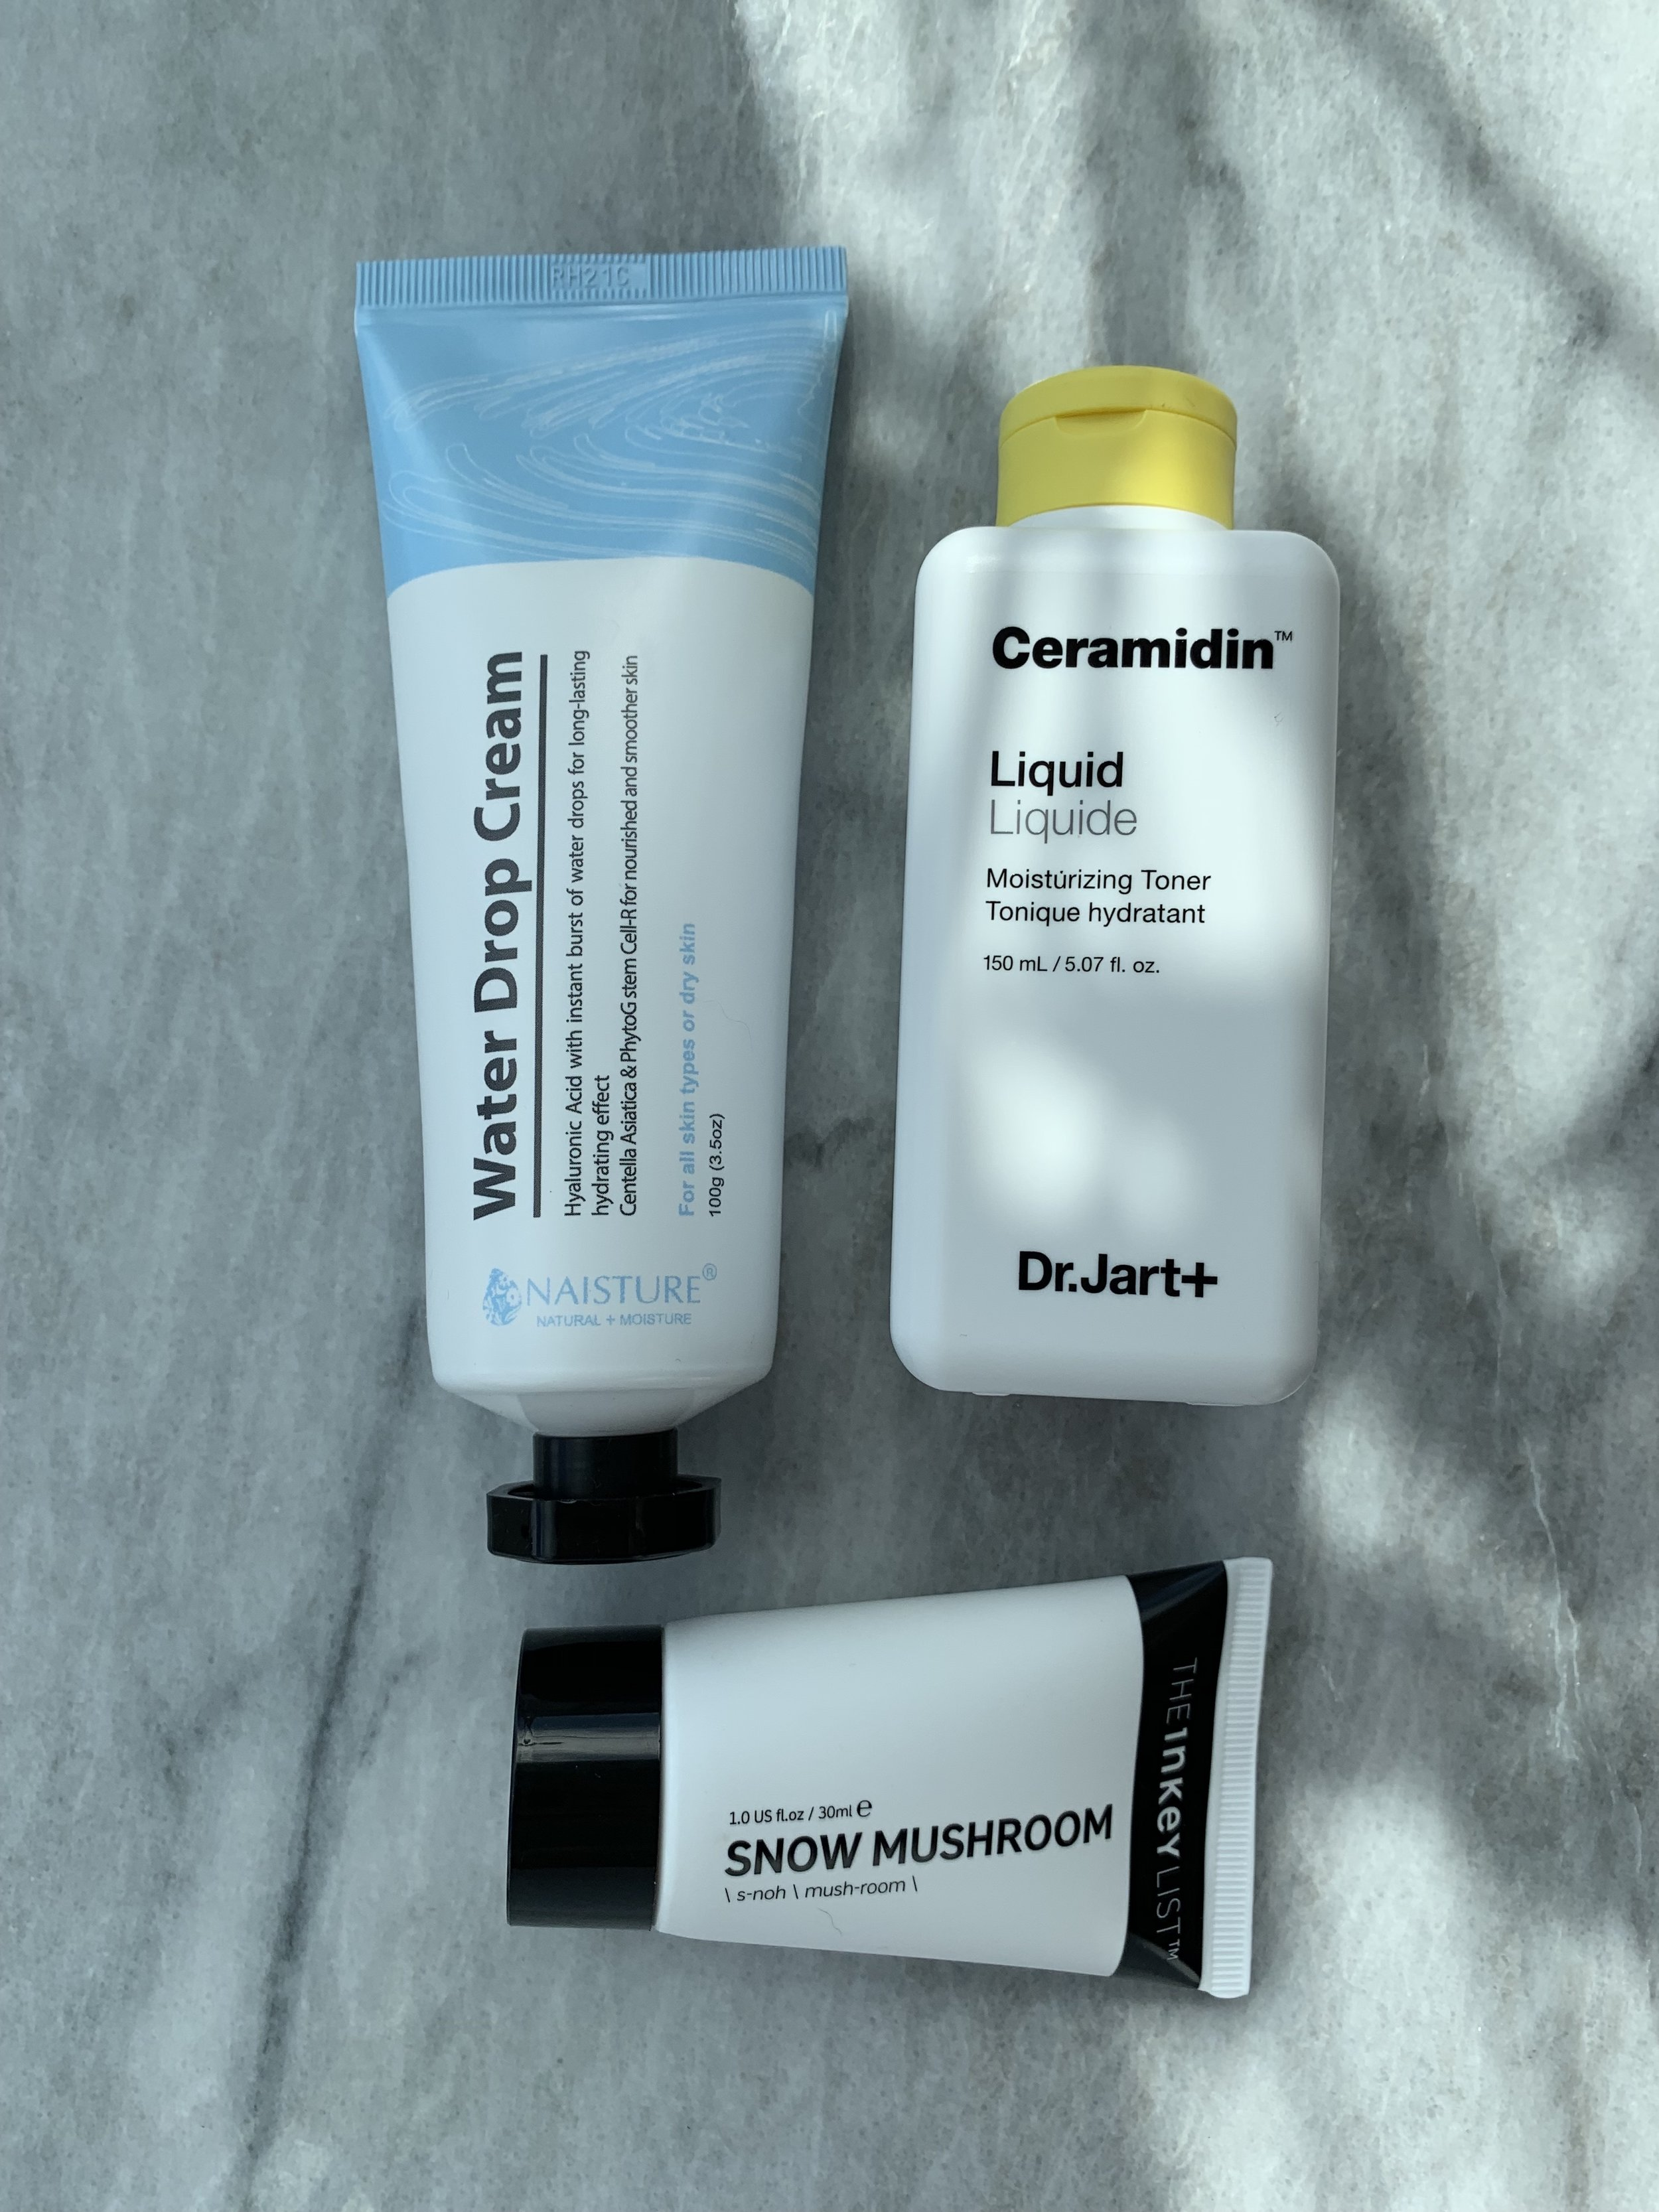 Three super lightweight moisturizers that I think are great for summer weather.